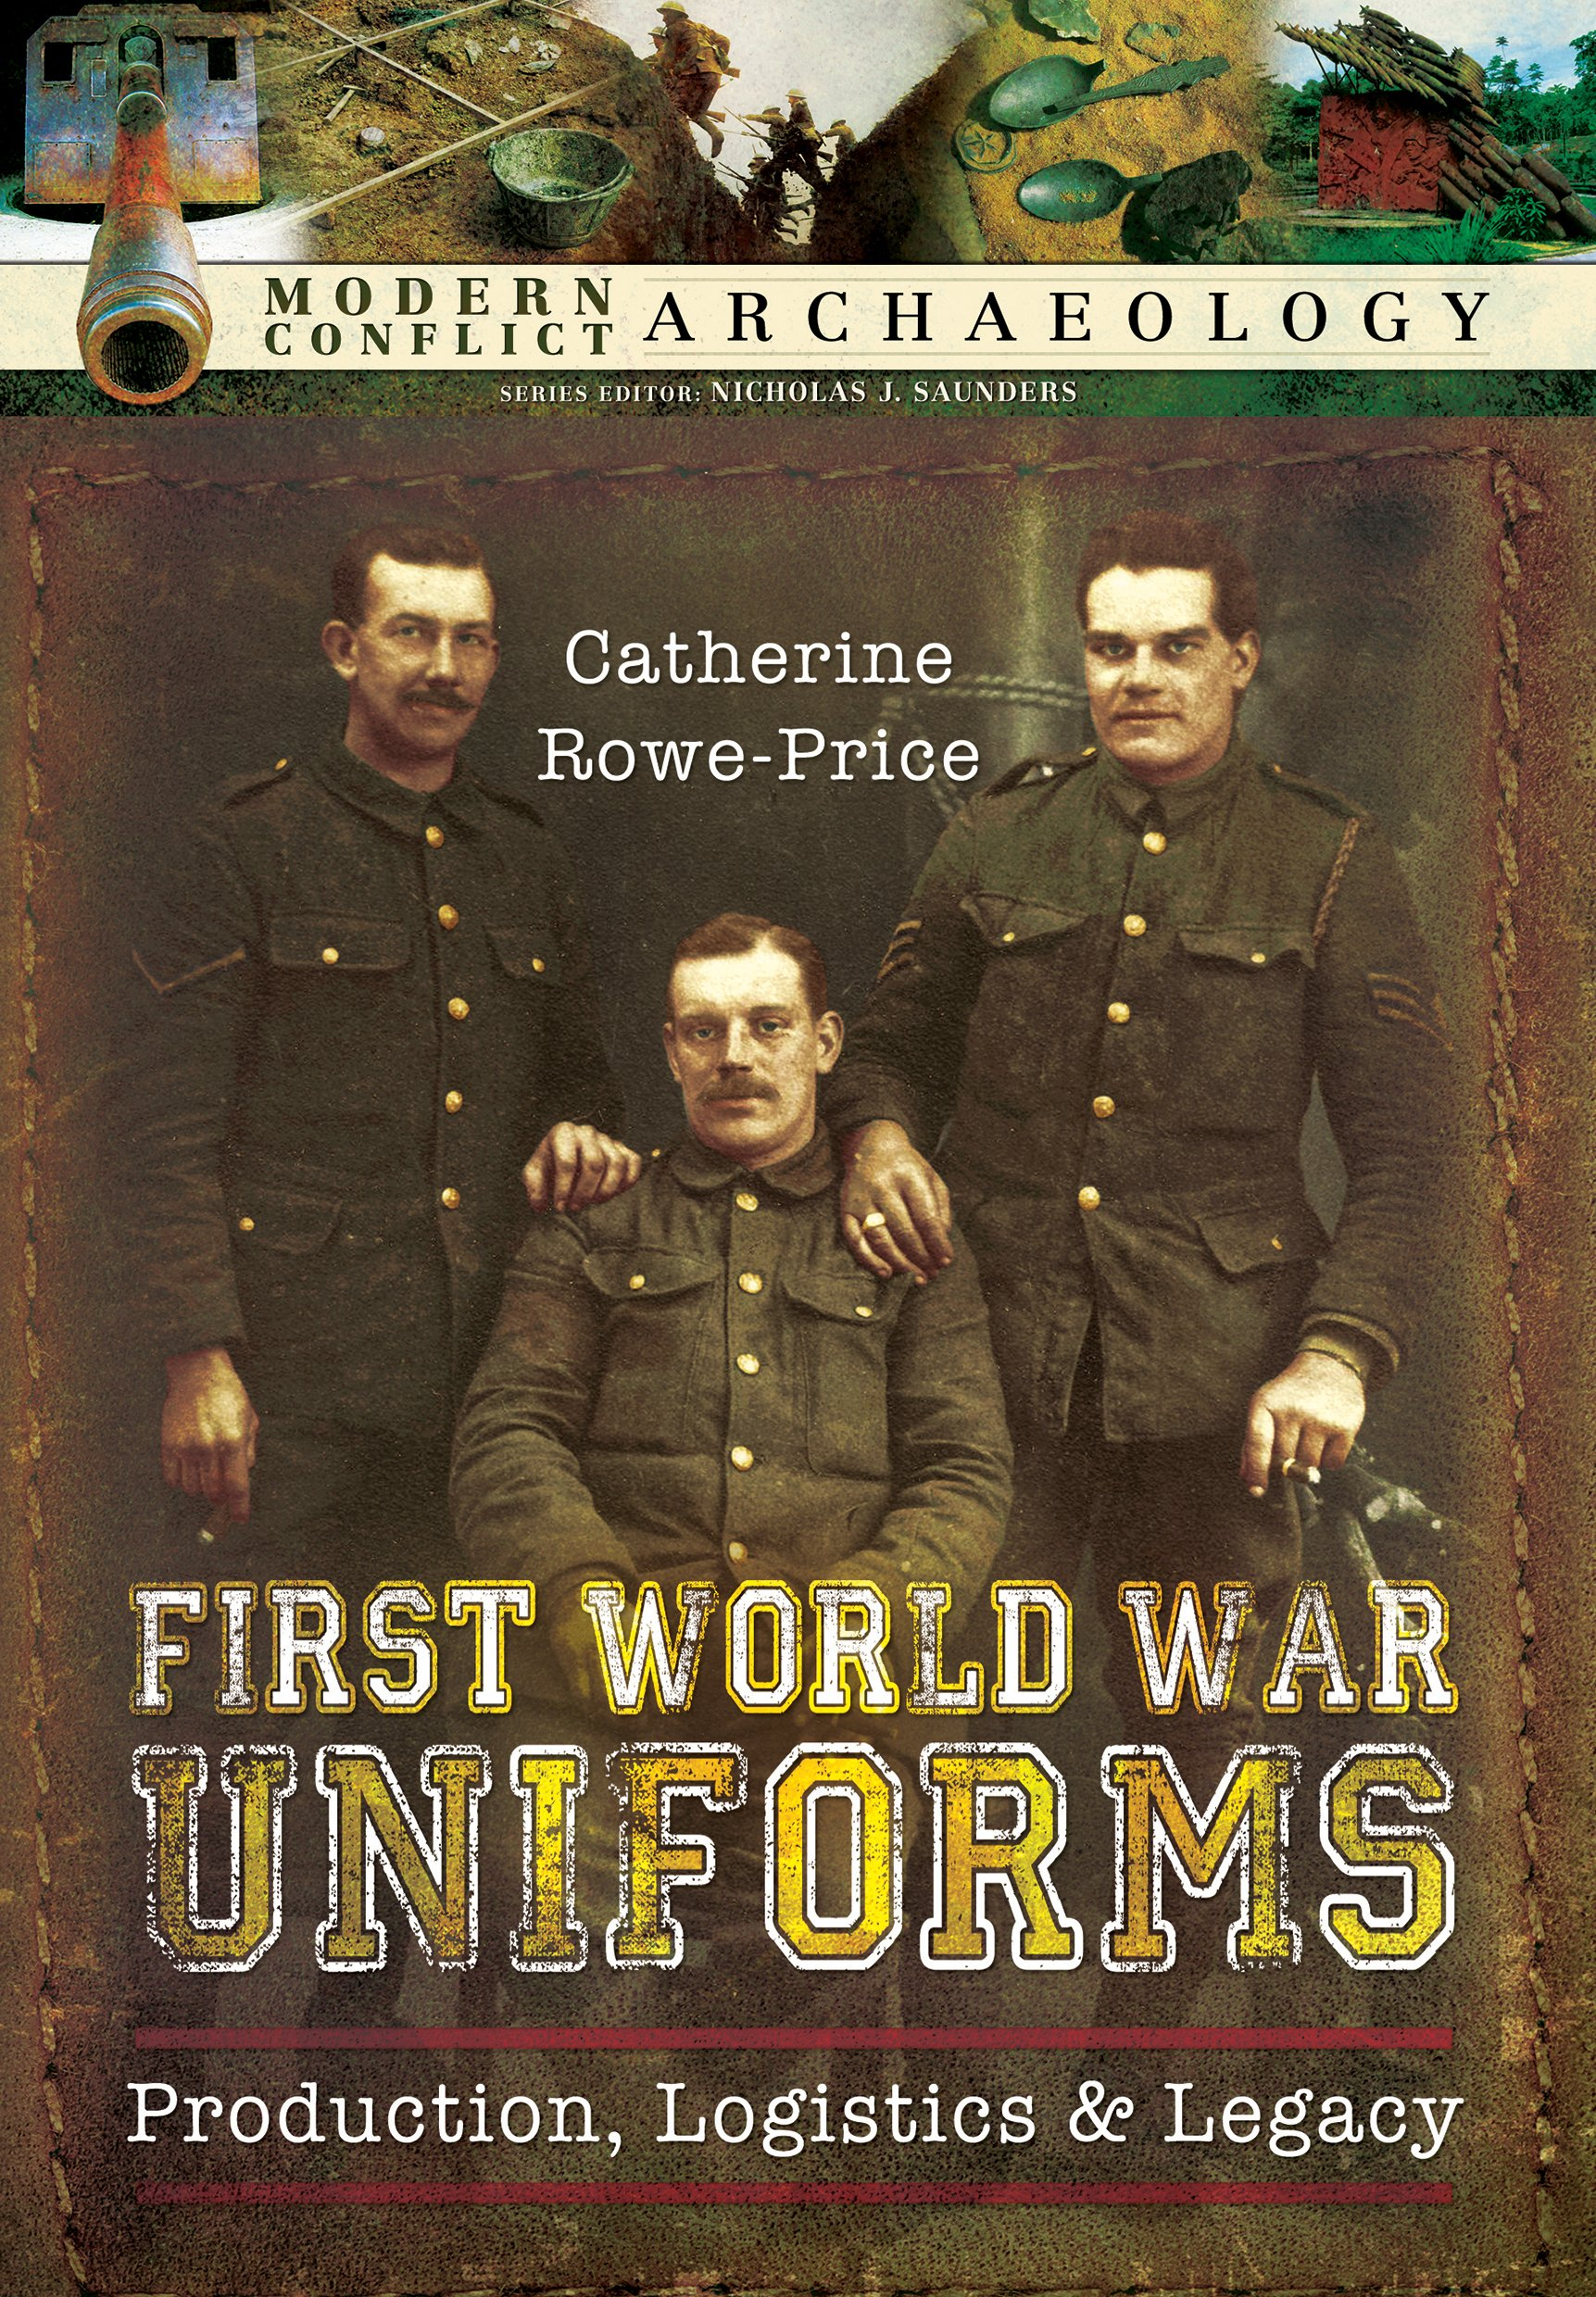 First World War Uniforms: Lives, Logistics, and Legacy in British Army Uniform Production 1914–1918 (Modern Conflict Archaeology)